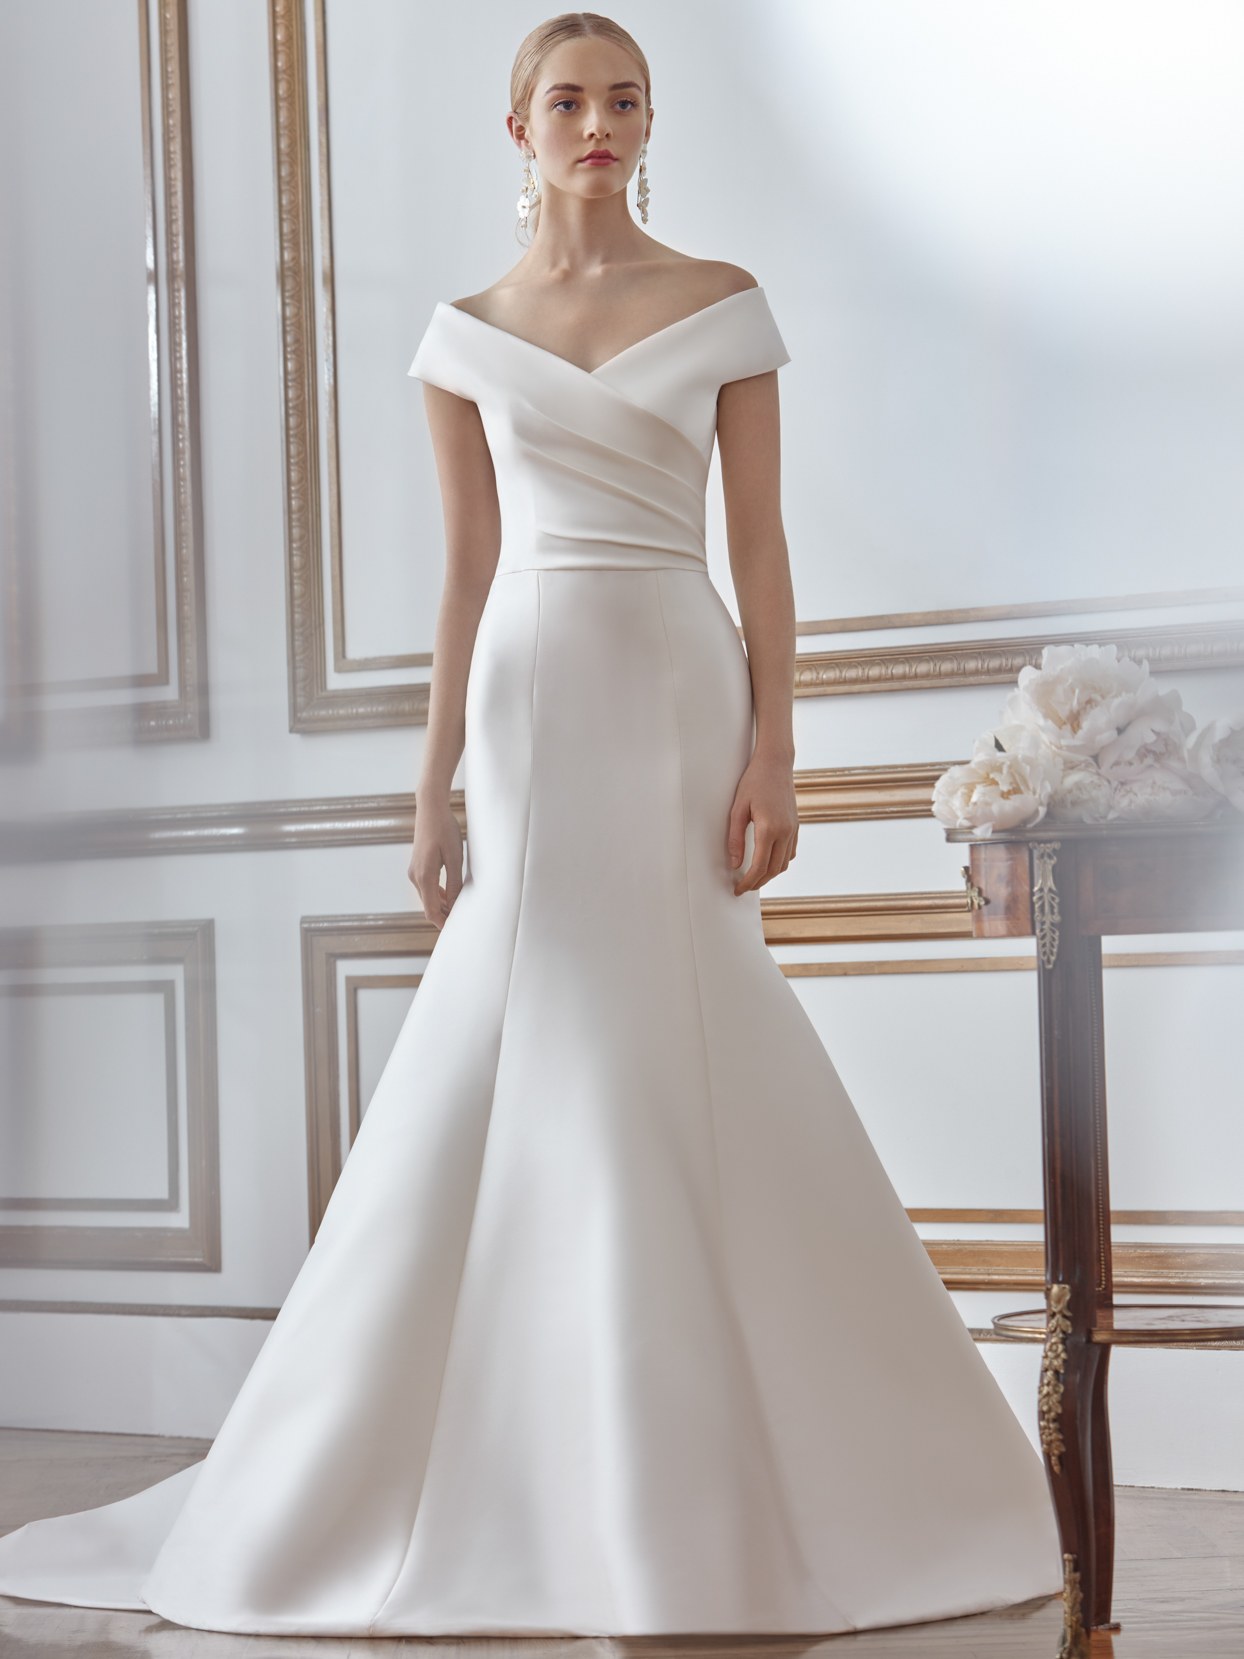 sareh nouri trumpet v-neck wedding dress fall 2021